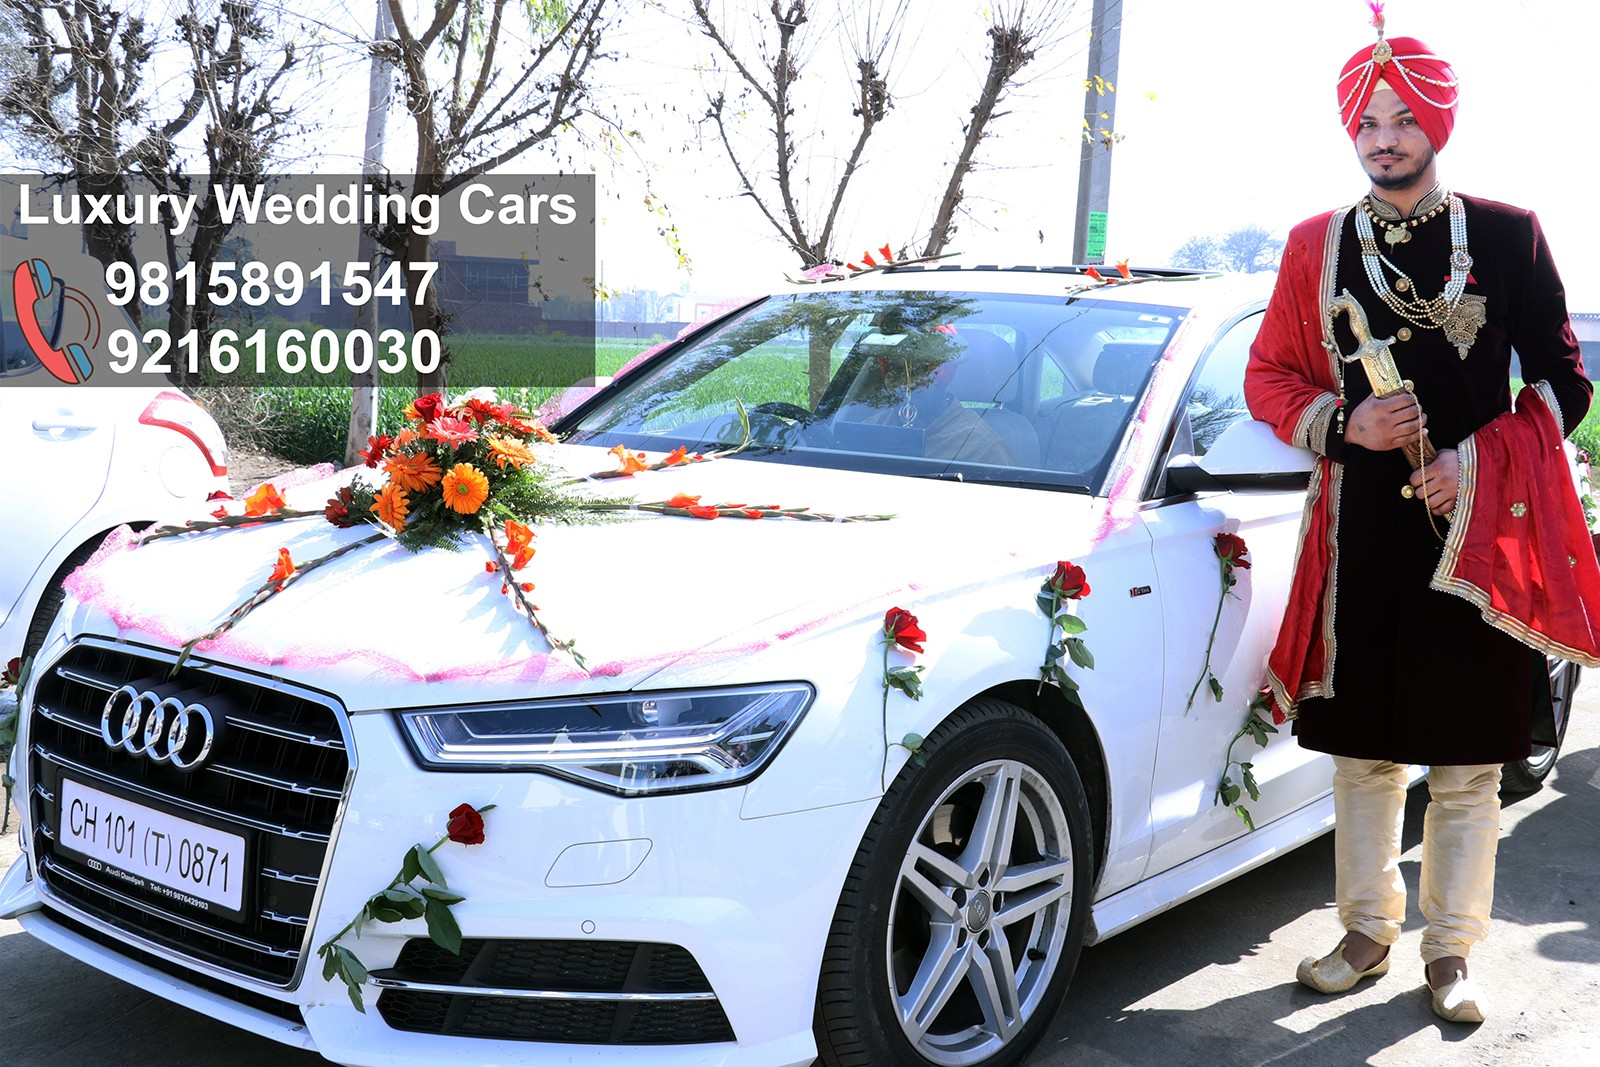 Luxury Audi Car Rentals In Chandigarh Audi Car Rentals Chandigarh - Audi rental cars